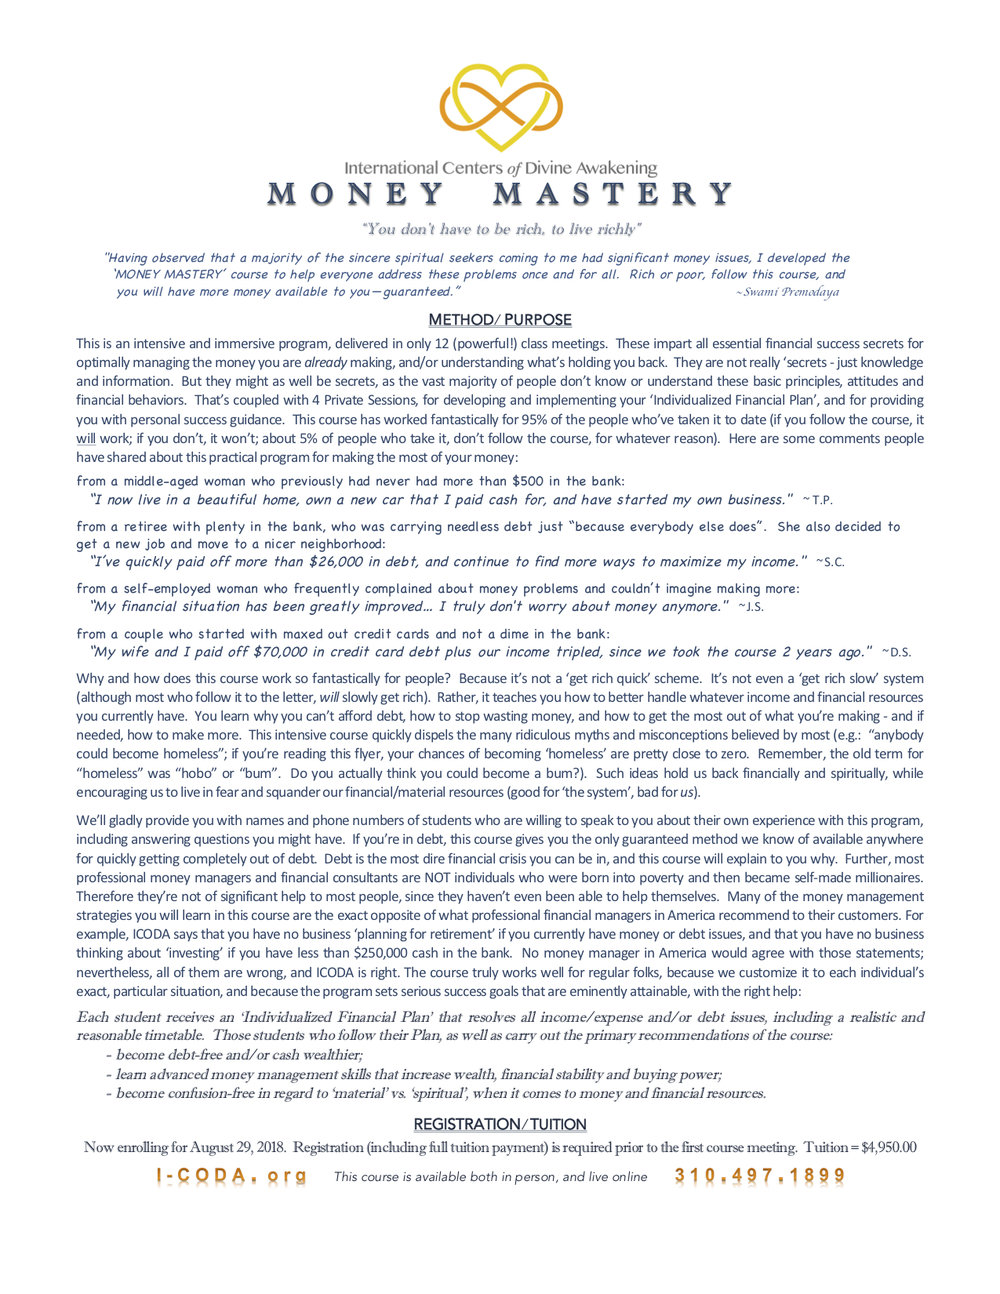 Money Mastery information.jpg